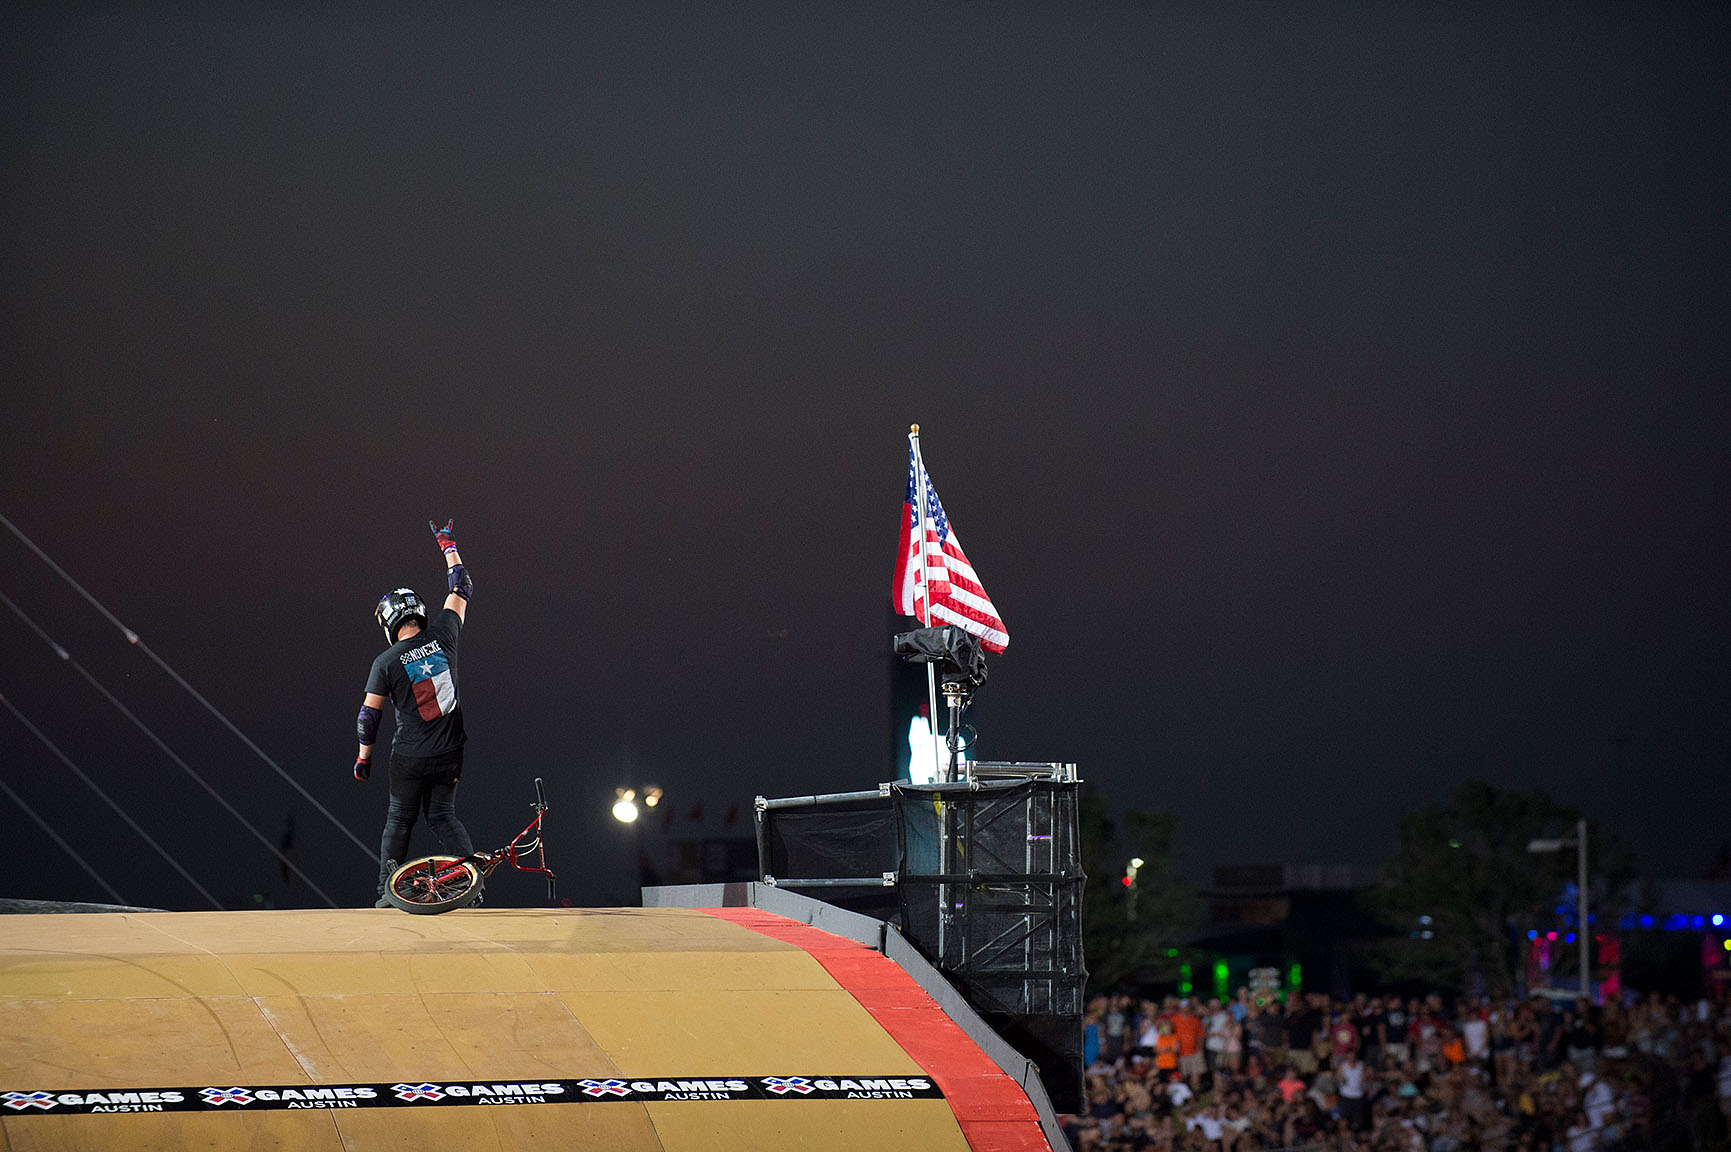 Tyler, Texas, native and veteran BMX Big Air competitor Morgan Wade arrived at X Games Austin as a gold-medal contender, and he remained in that position for much of the competition. Wade's huge superman backflips and double tailwhips at height wowed the crowd, but not more than his antics on top of the MegaRamp following his runs. Wade danced, frolicked and even waved the flag like a hybrid version of a pro wrestler/cowboy.